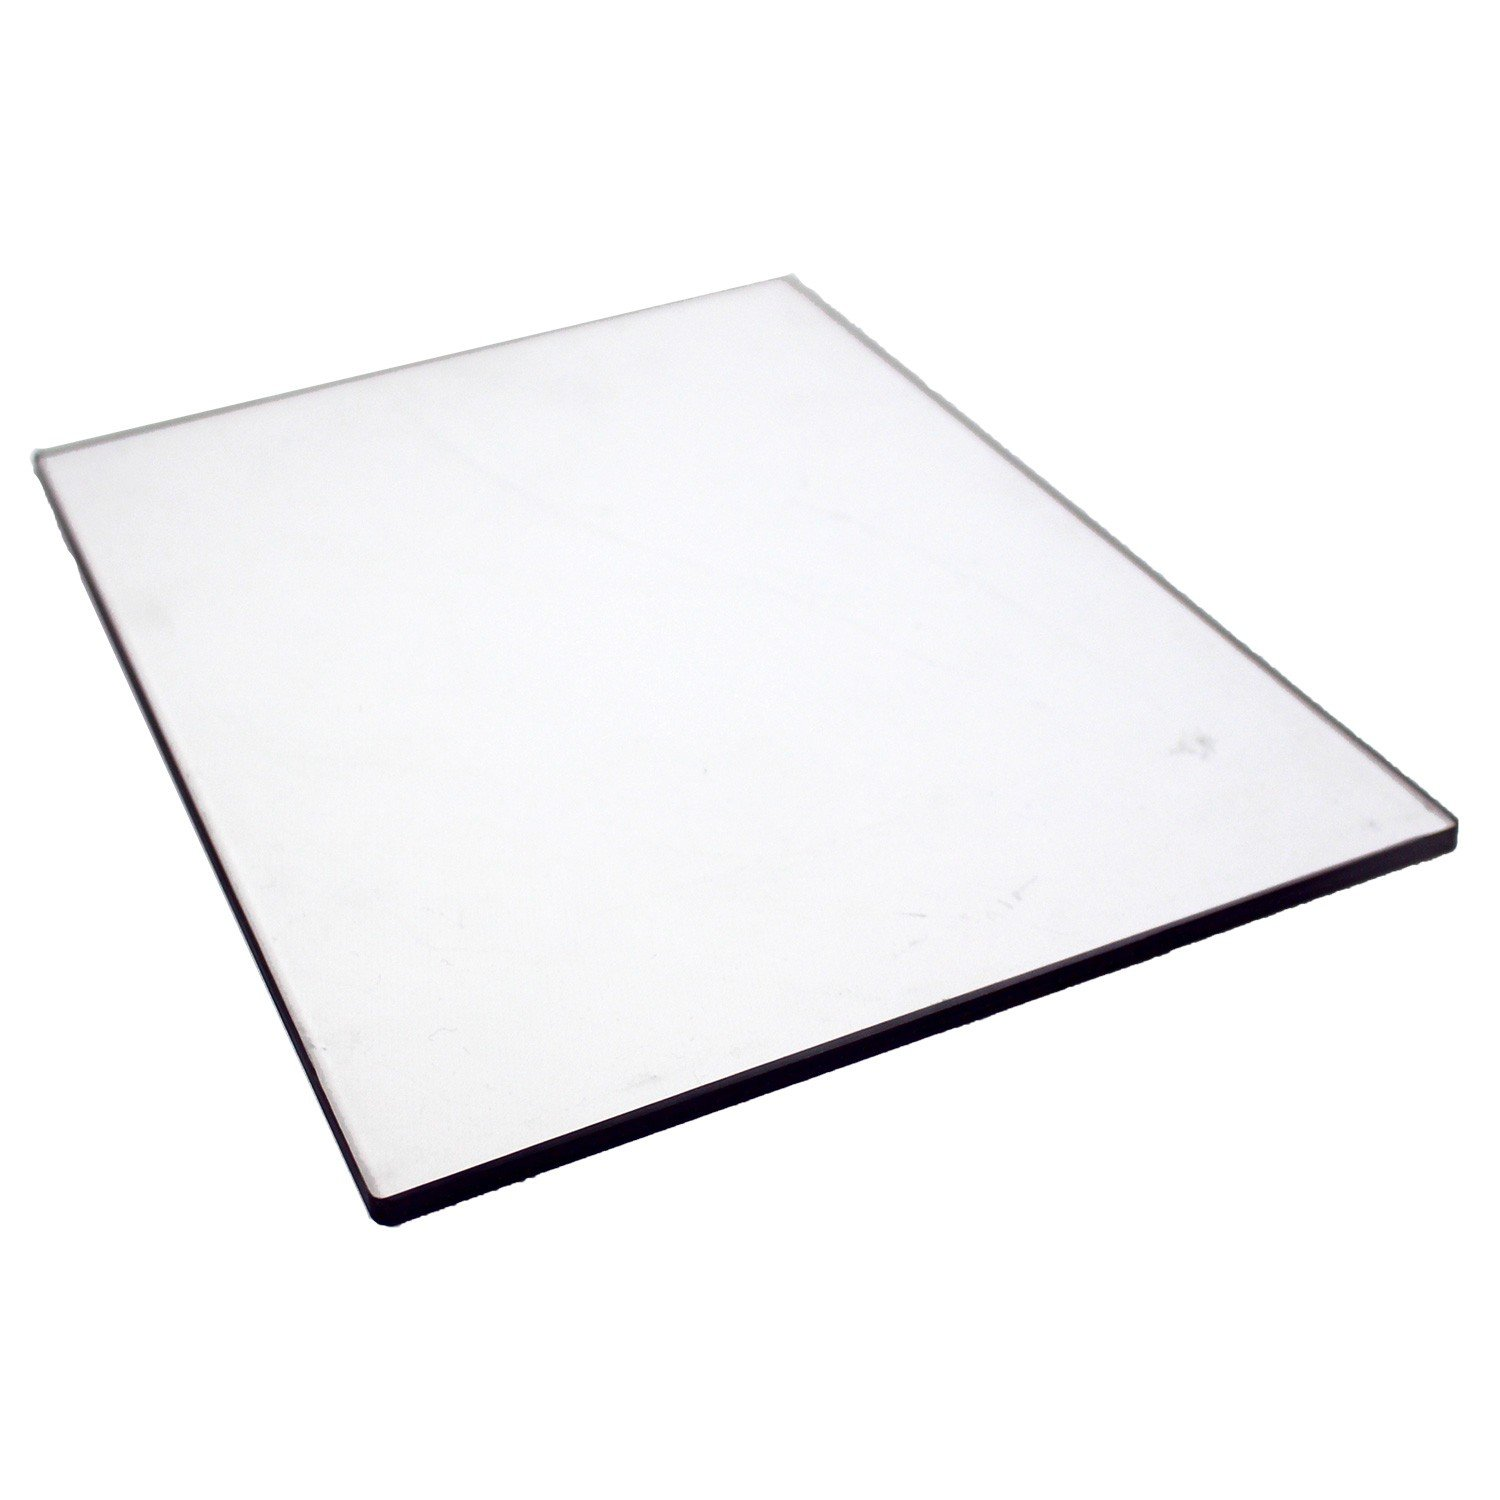 Crossover Replacement Clear Top Plate